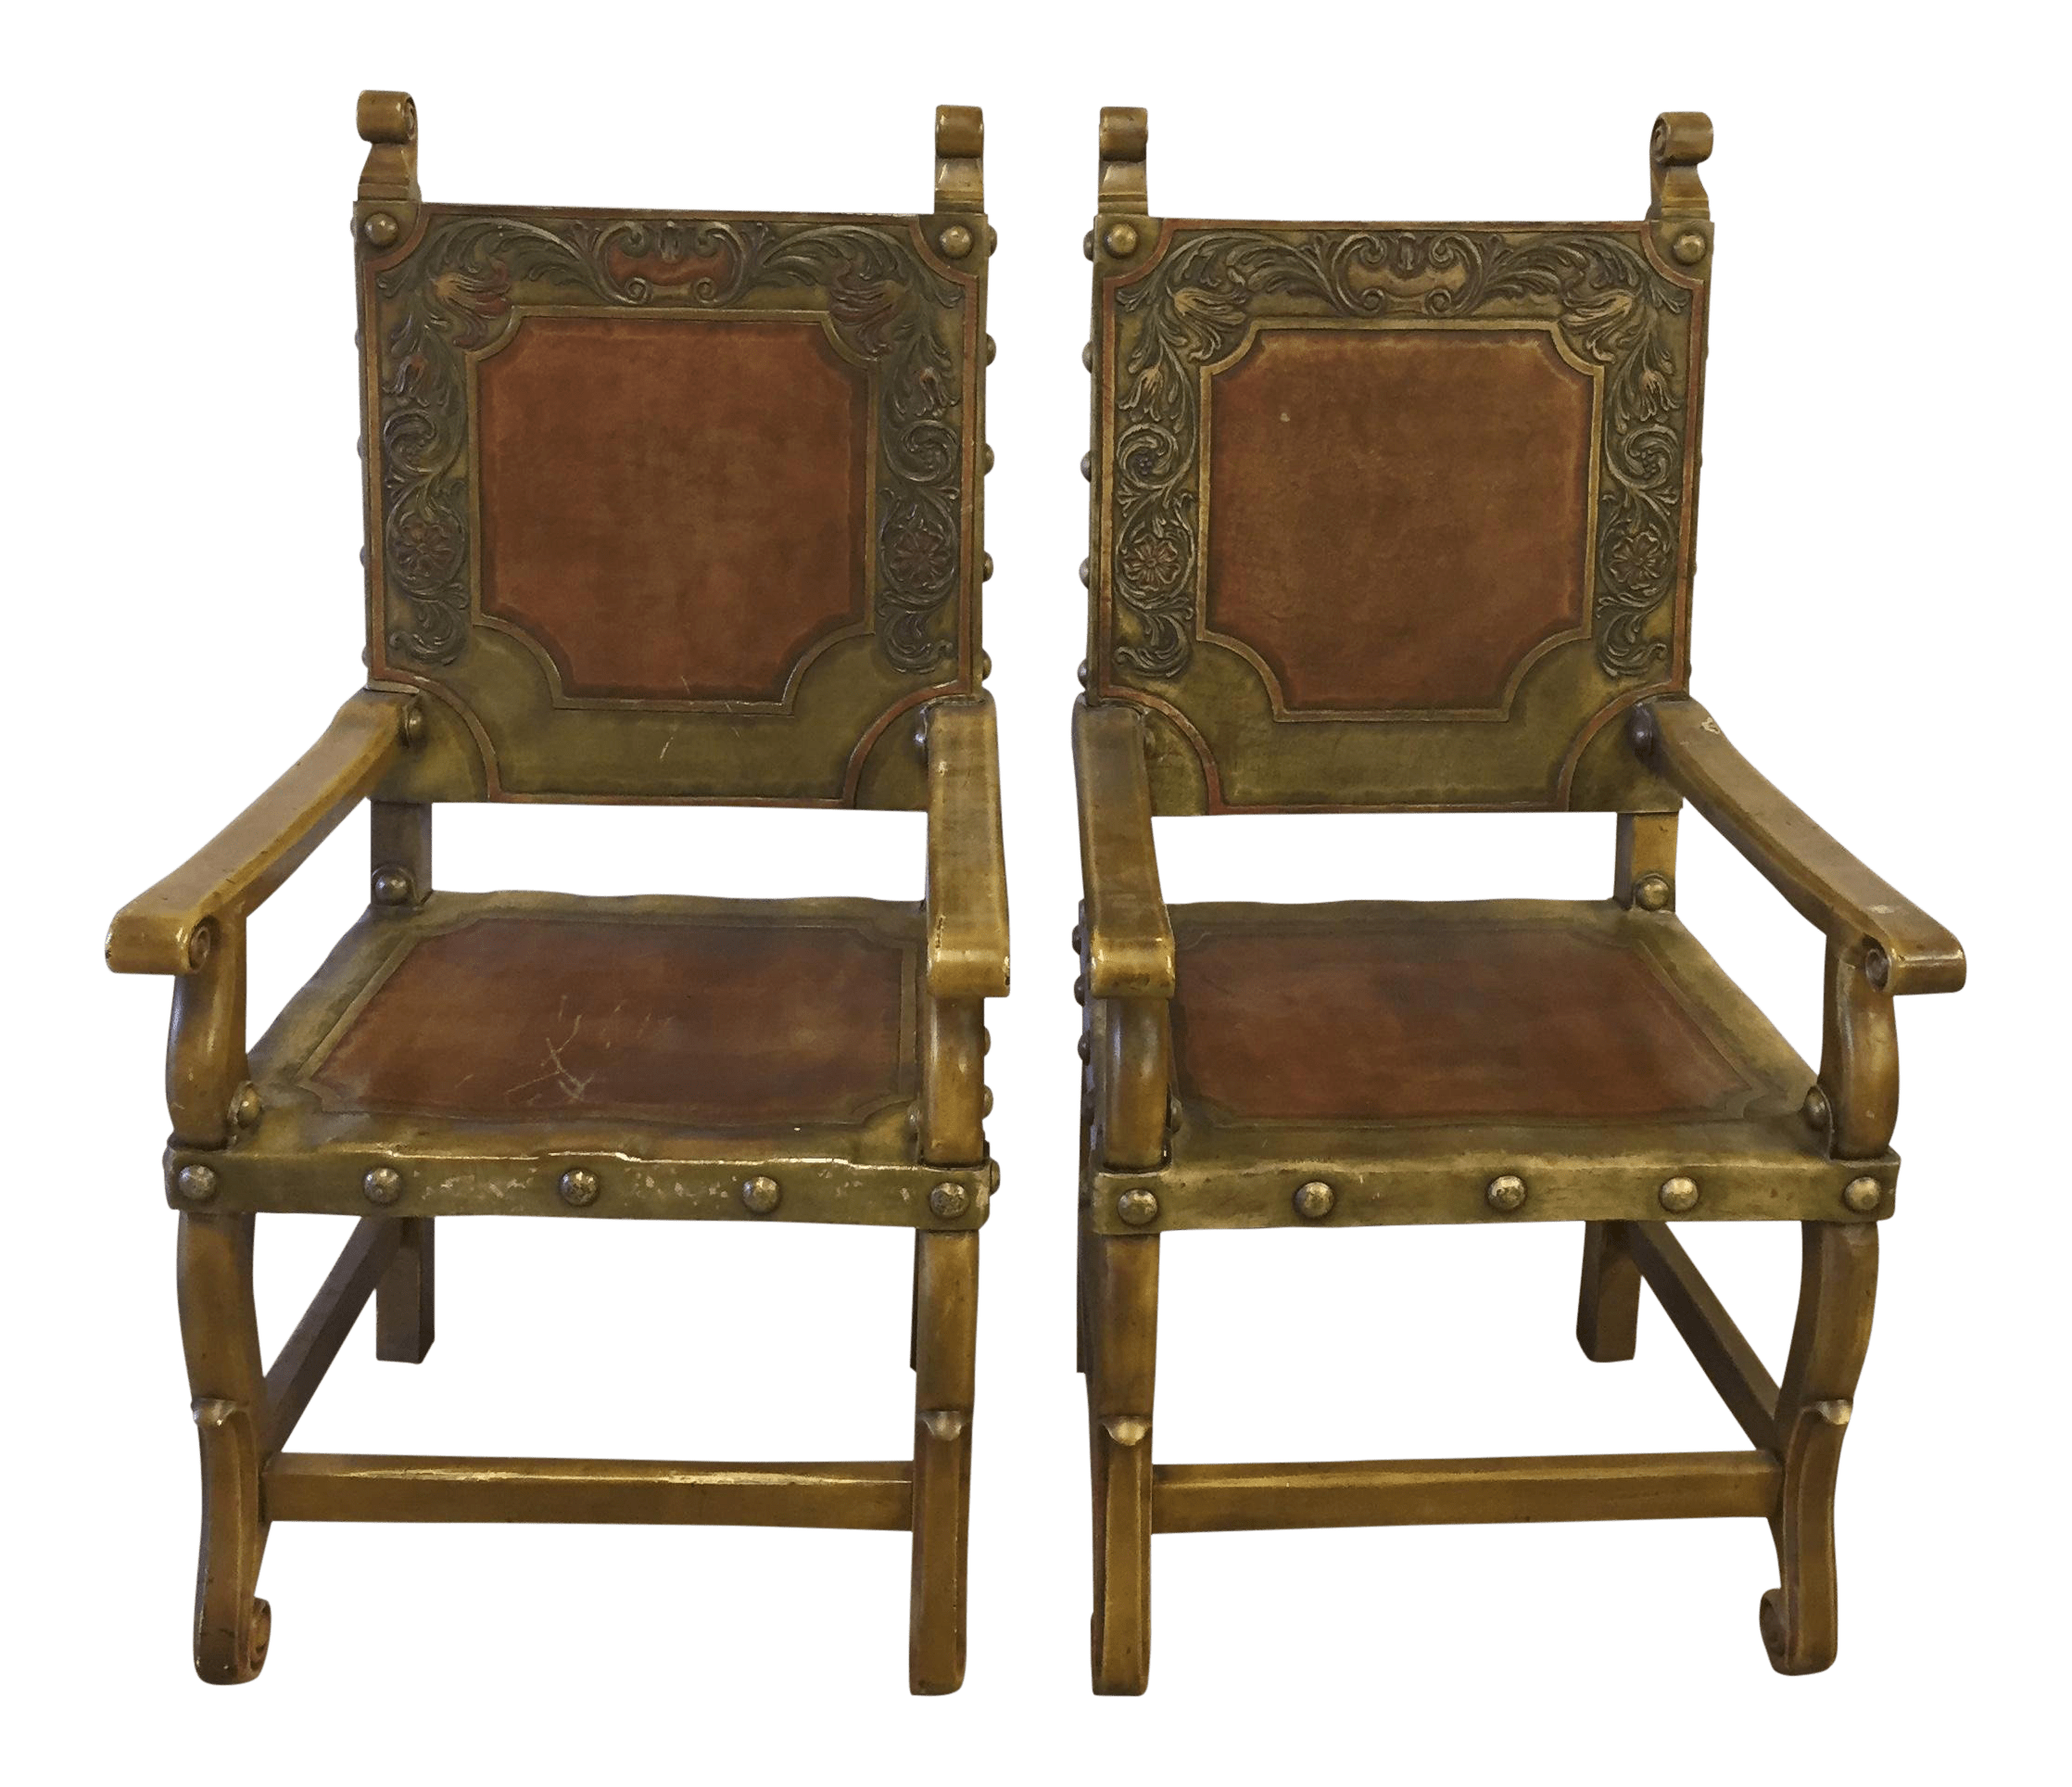 Western Chairs Spanish Heritage Western Leather Hand Tooled Leather Arm Chairs A Pair